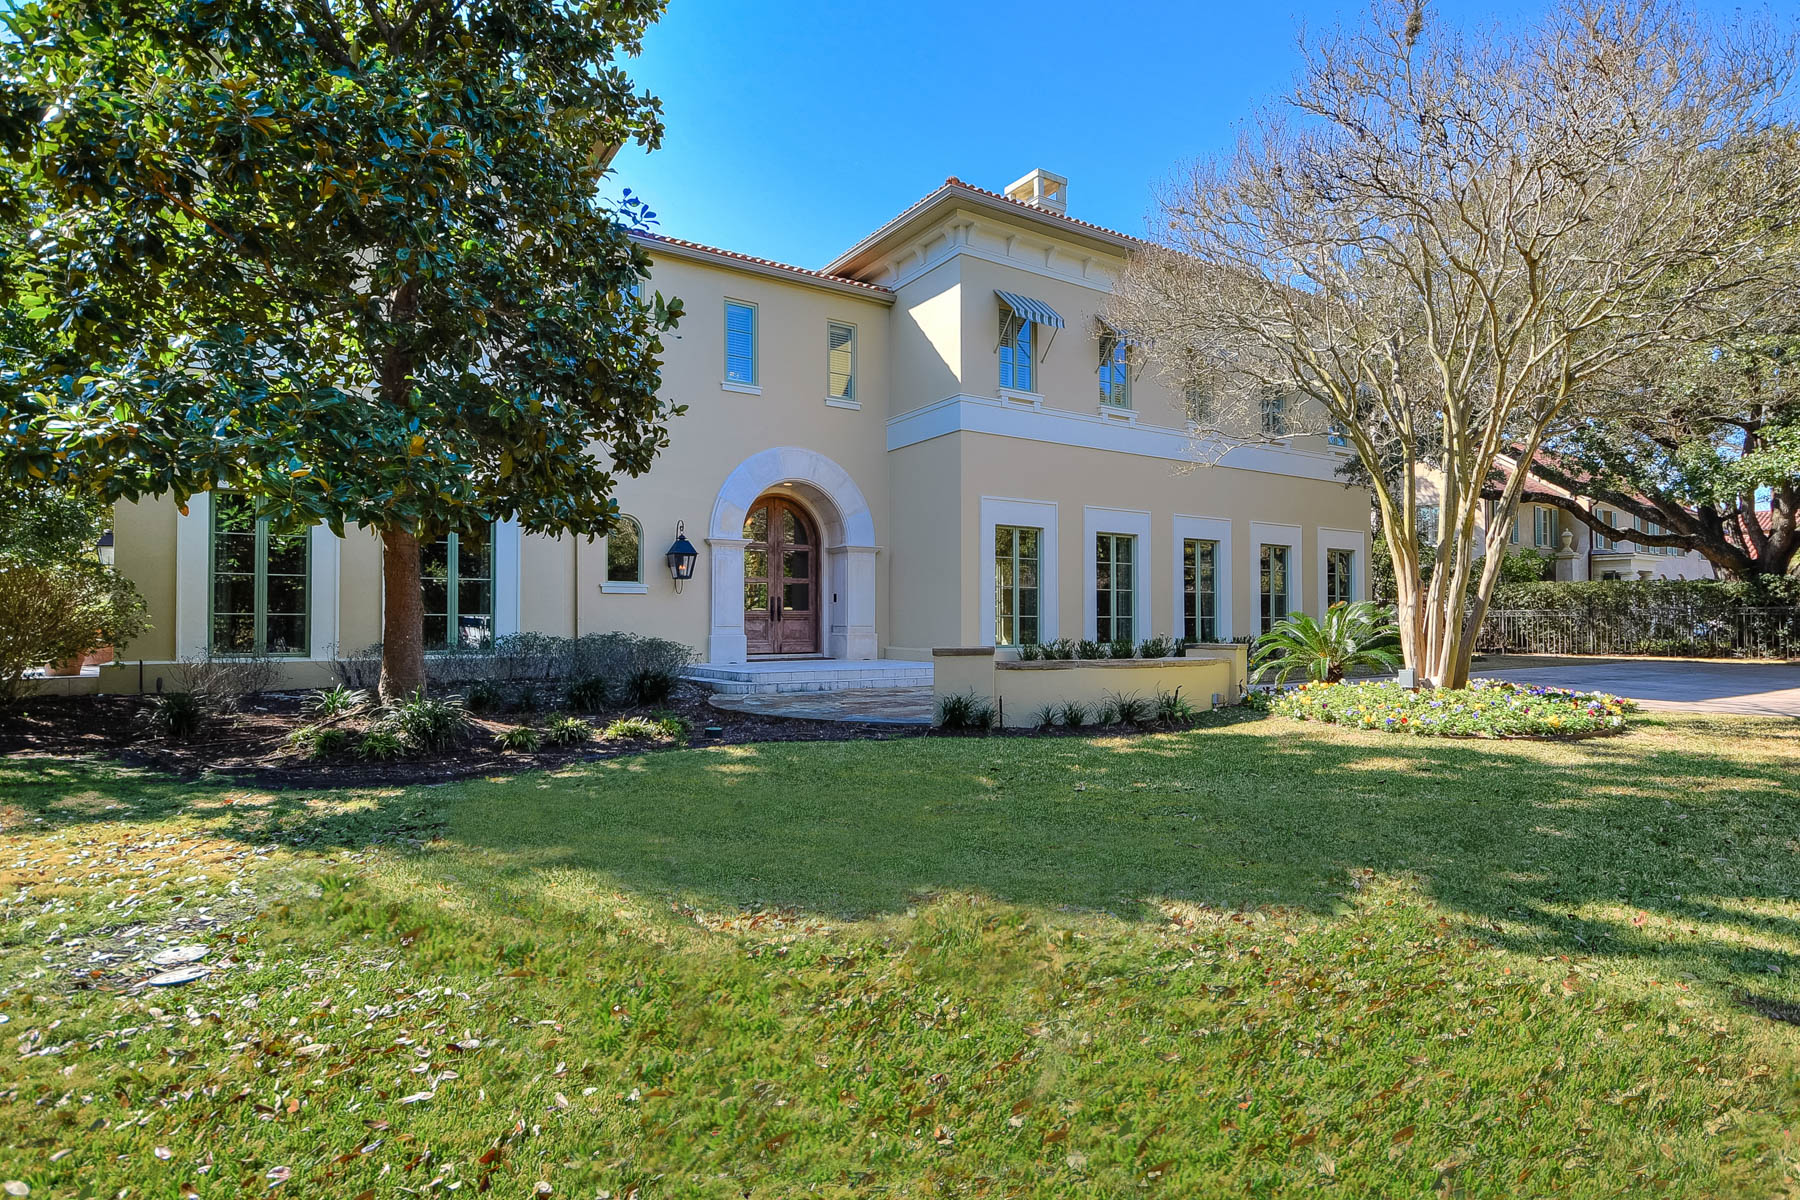 Single Family Home for Sale at Stunning Mediterranean Home in Terrell Hills 374 Terrell Road San Antonio, Texas 78209 United States